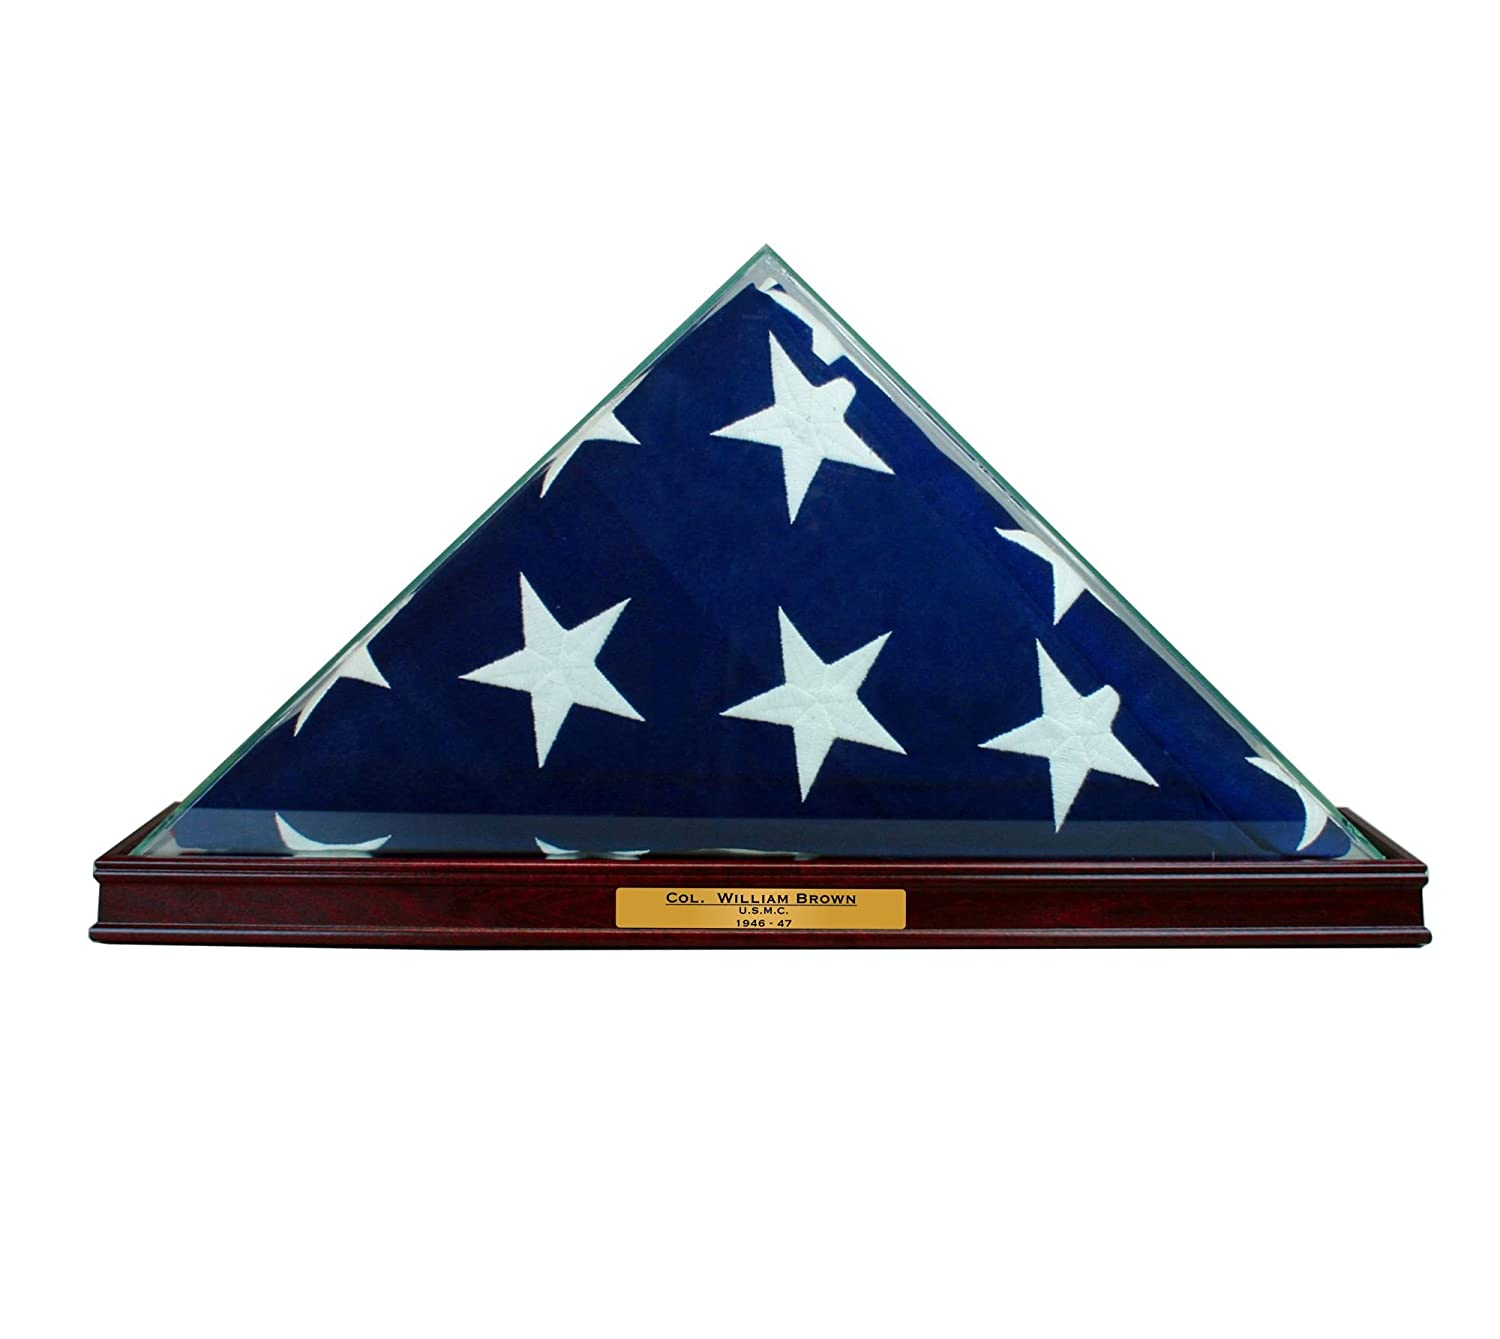 Perfect Cases All Glass Flag Display Case for 9.5' X 5' Flag with Engraving (Cherry) Inc. TTFLG-CSPT-ENG